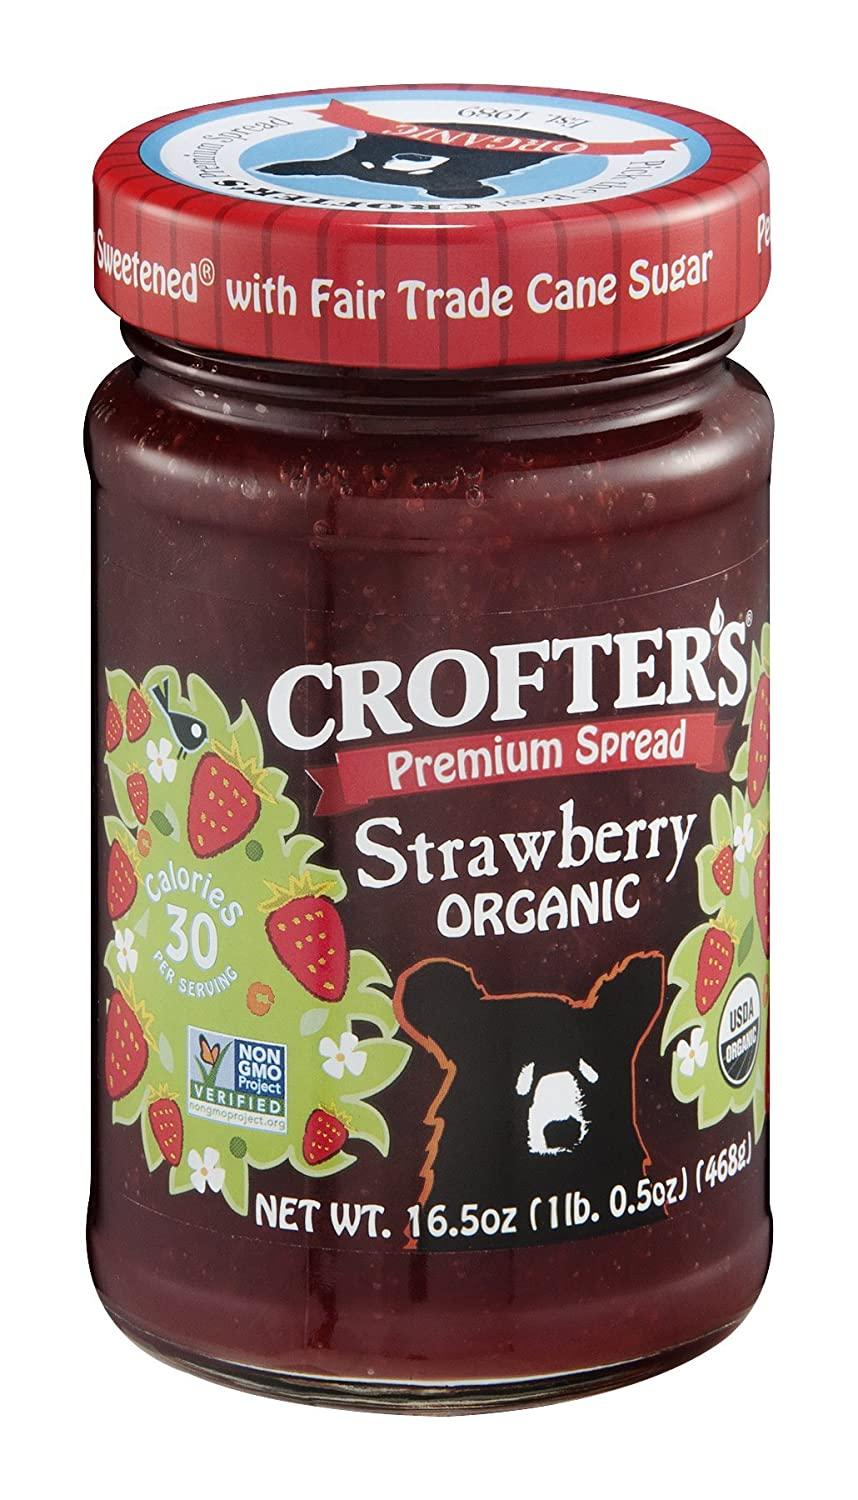 Crofters Organic Strawberry Conserve 16.5 6 per Max 48% OFF Ounce OFFer -- case.